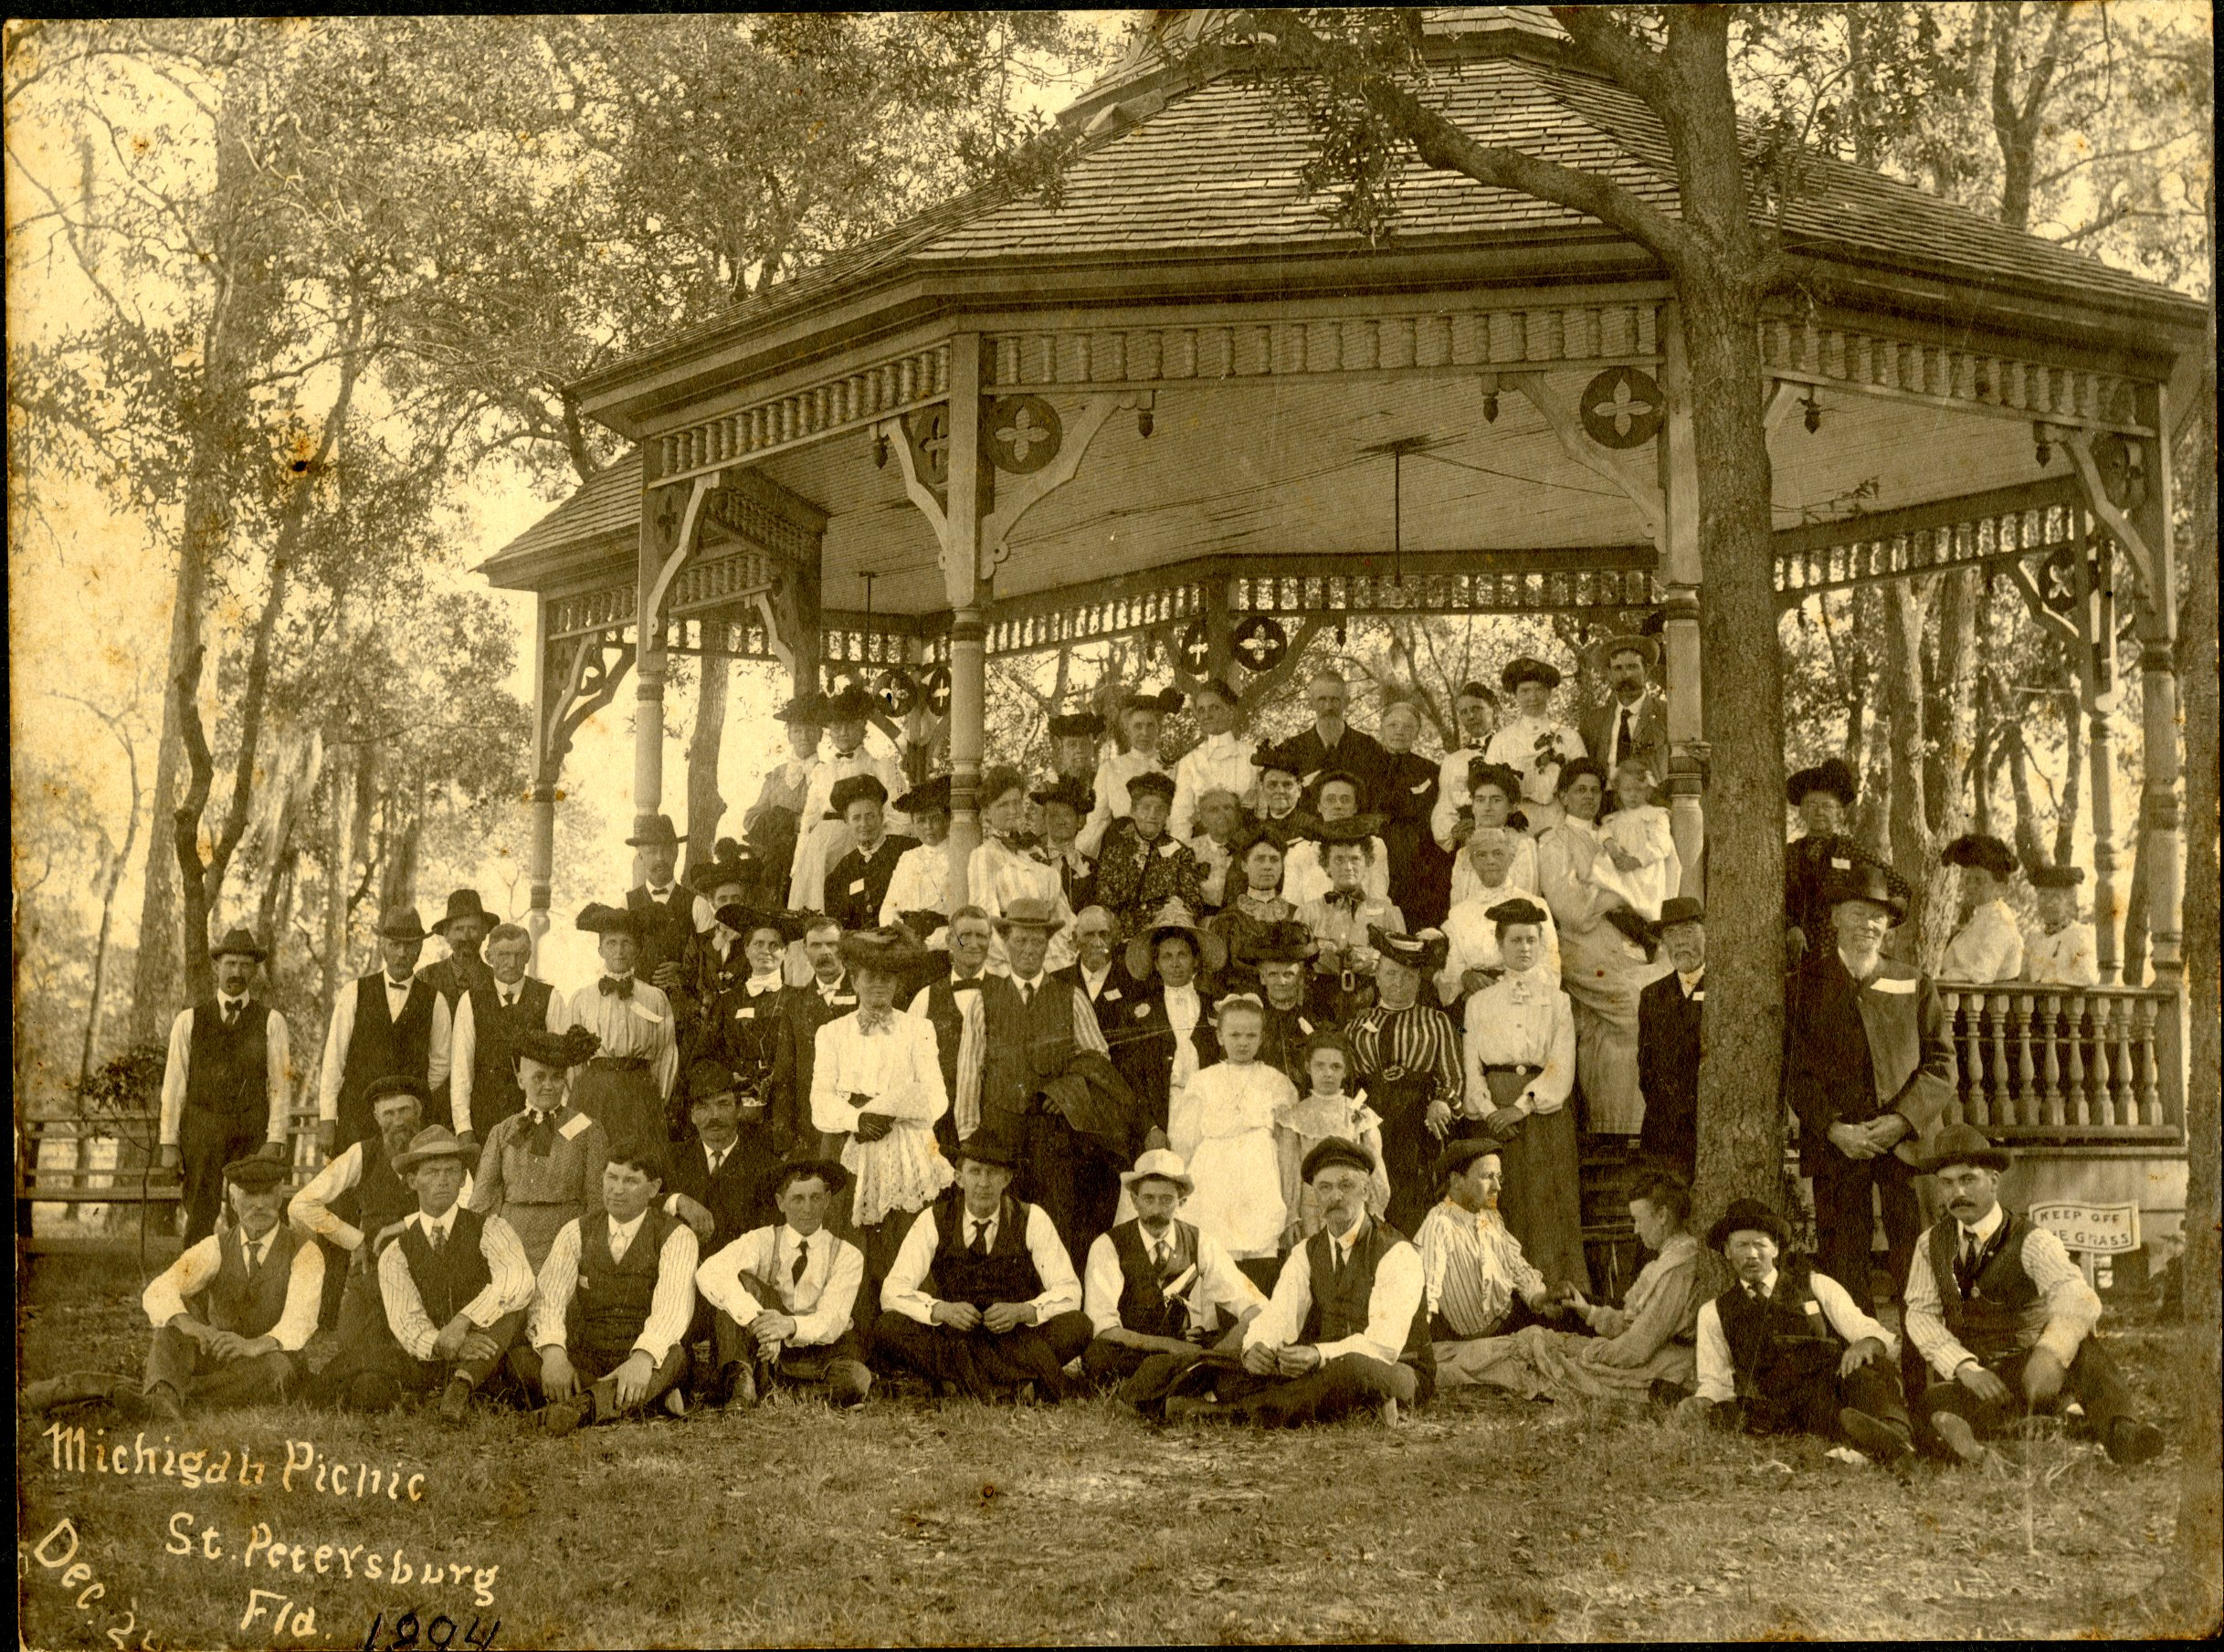 Michigan Picnic at the Williams Park bandstand in St. Petersburg, Florida, December 20, 1894. The Williams Park bandstand was built Park Improvement Association, comprised of leading women from the St. Petersburg community.